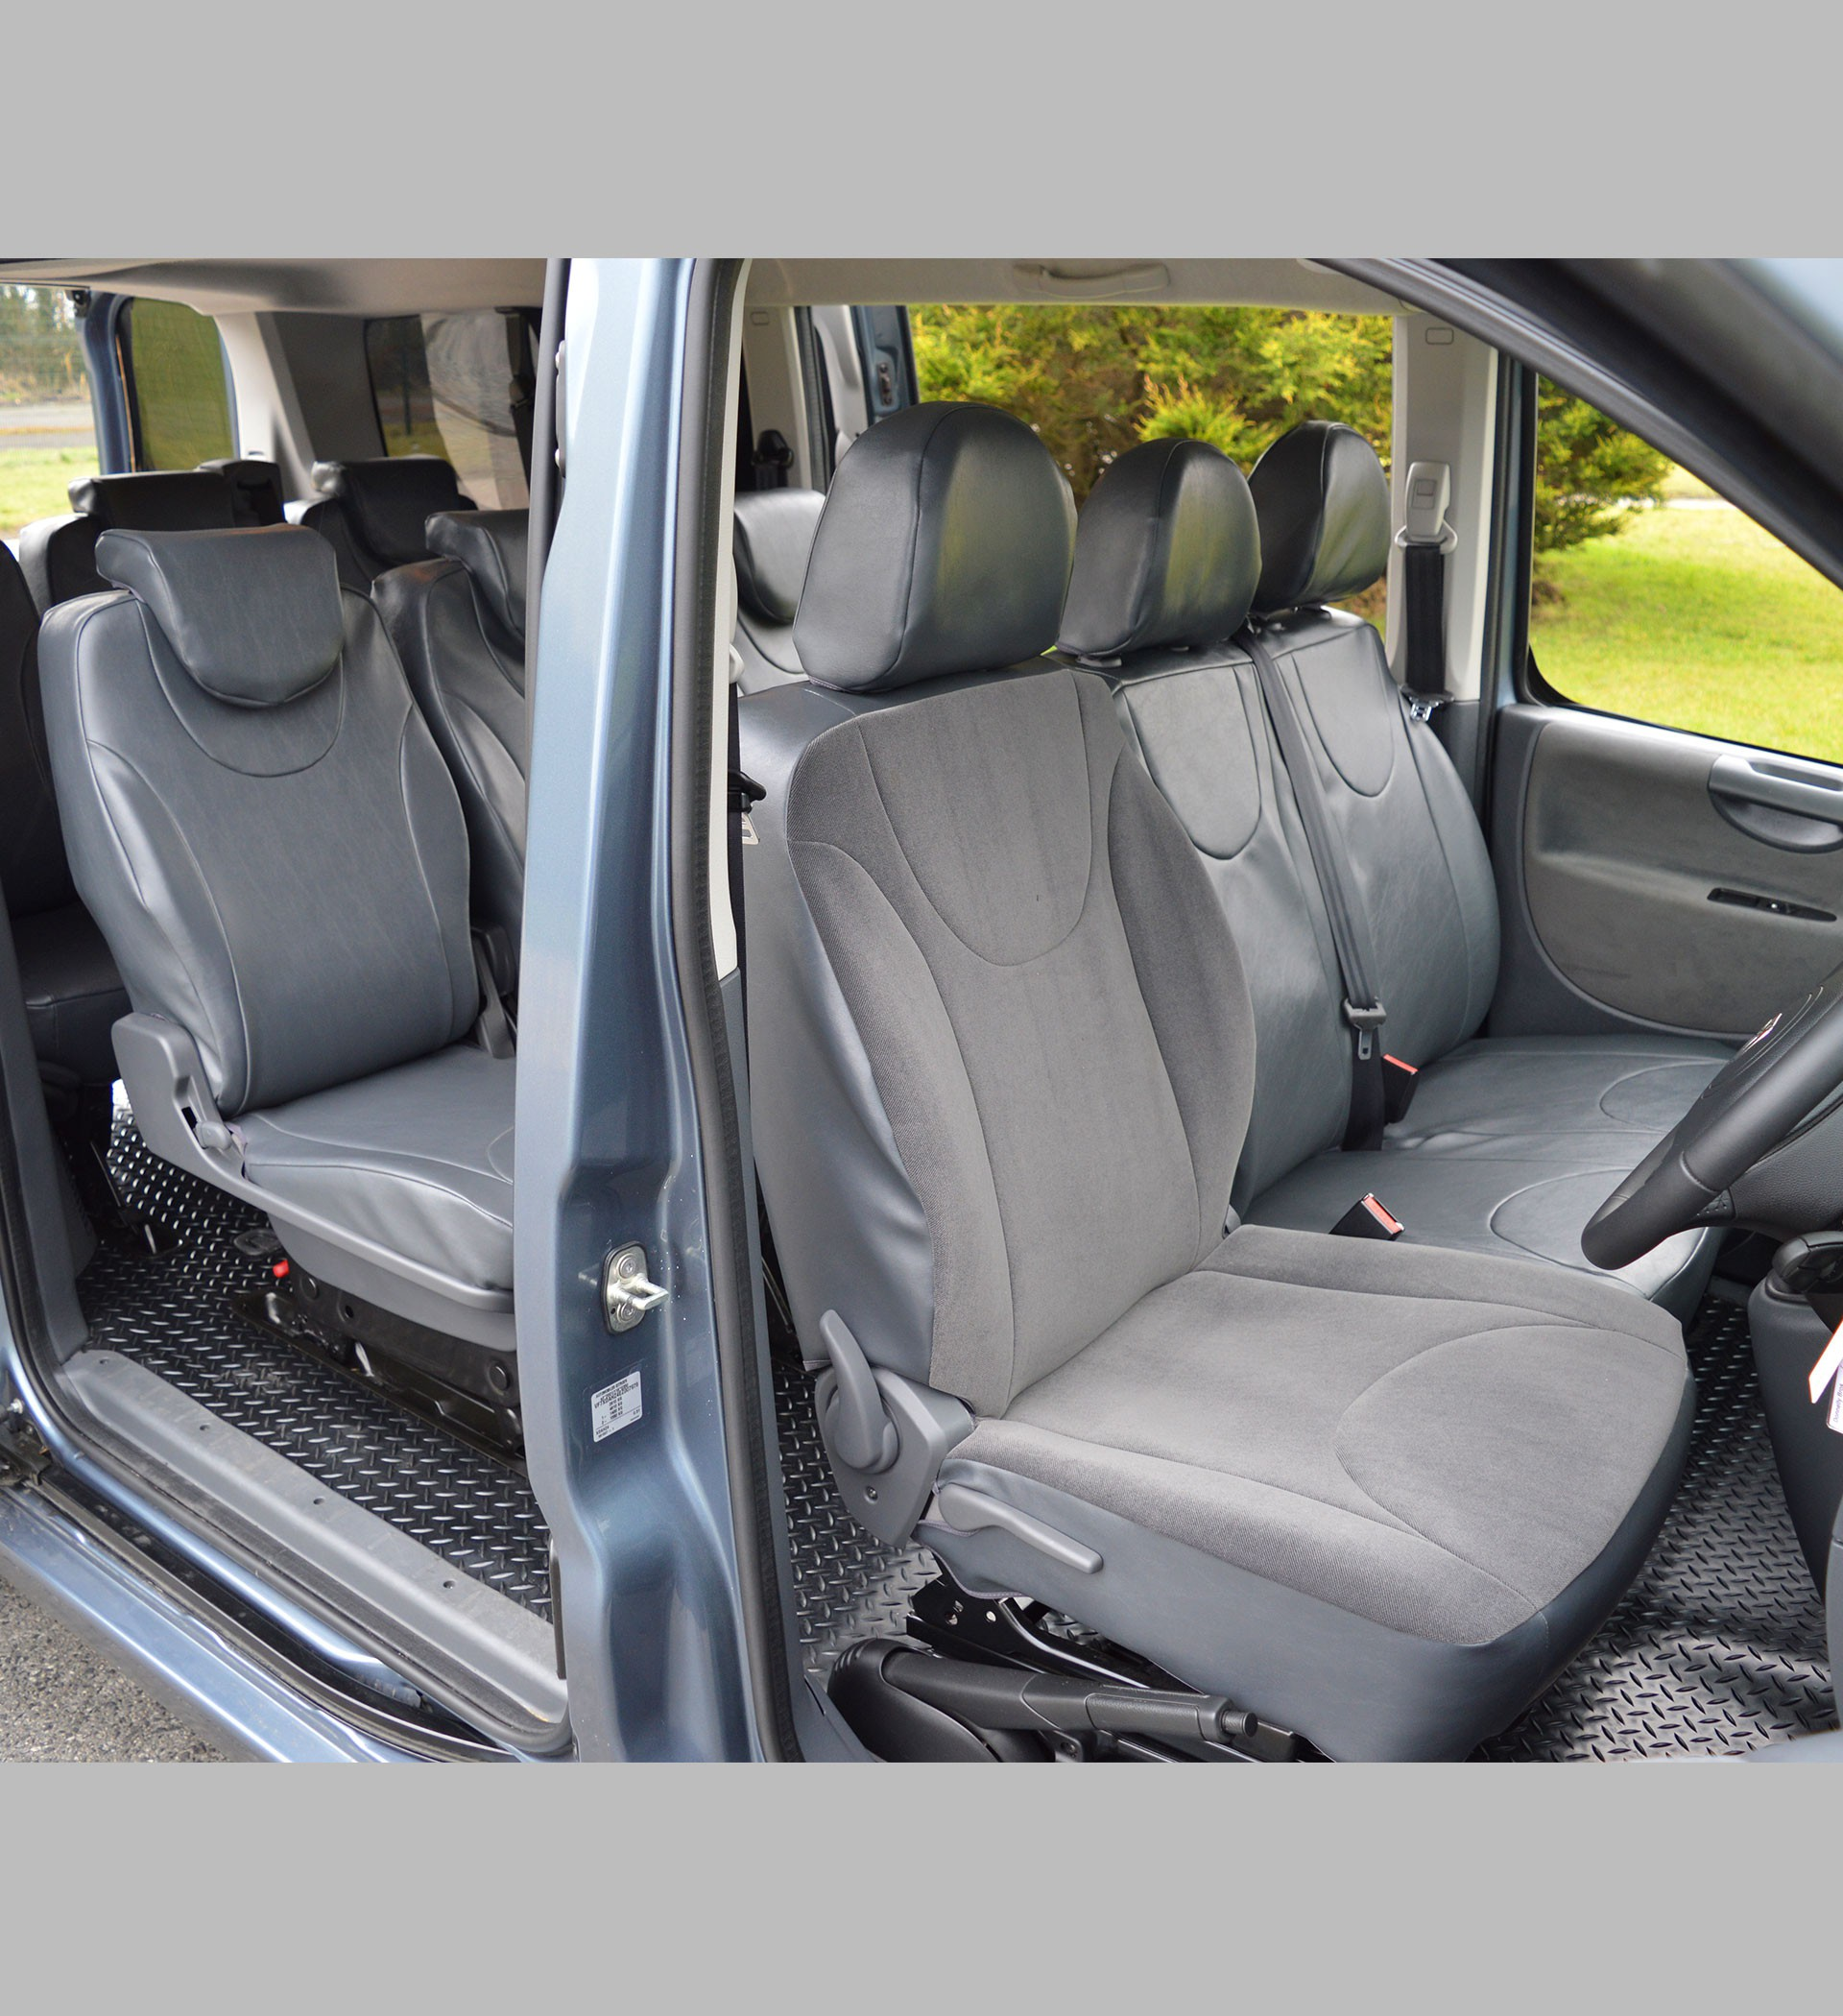 Toyota Proace 9 Seater Waterproof Tailored Van Seat Covers